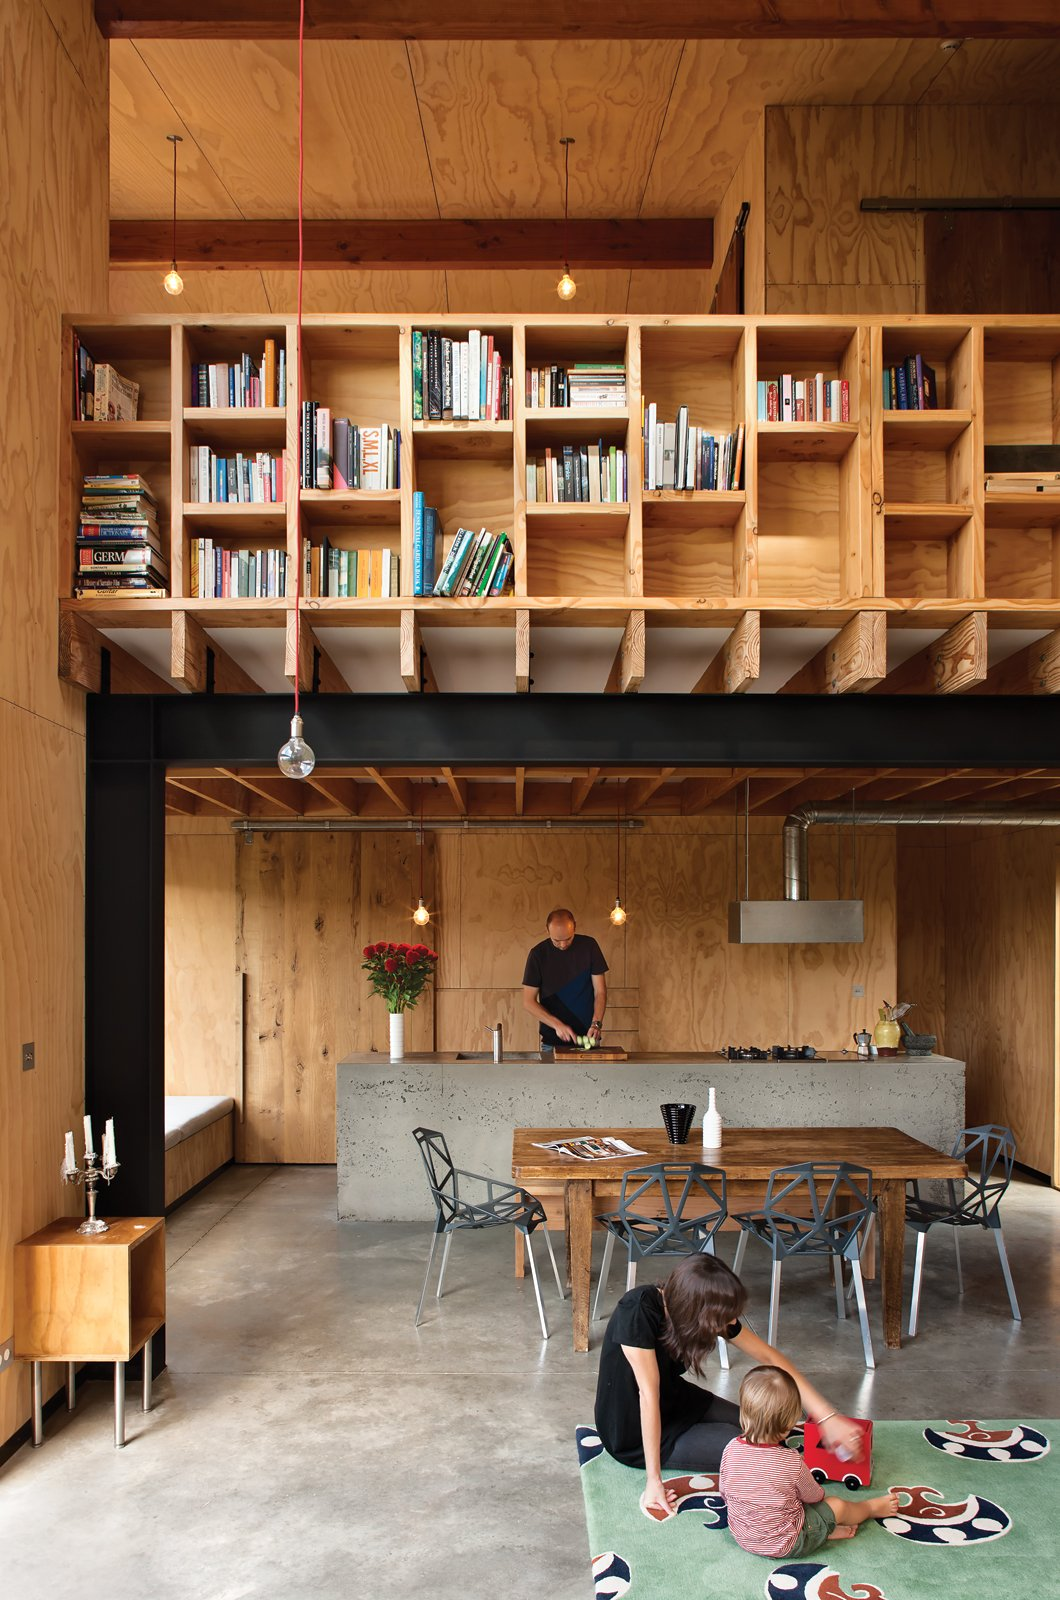 Concrete Floor, Wood Backsplashe, Pendant Lighting, Concrete Counter, Shelves Storage Type, Shed & Studio, and Storage Space Room Type Davor (with his wife, Abbe, and son, August) designed the main living and dining pavilion as a double-height space to increase its perceived volume, and added high cubbies for extra storage.  Small Spaces from Rock the Boat